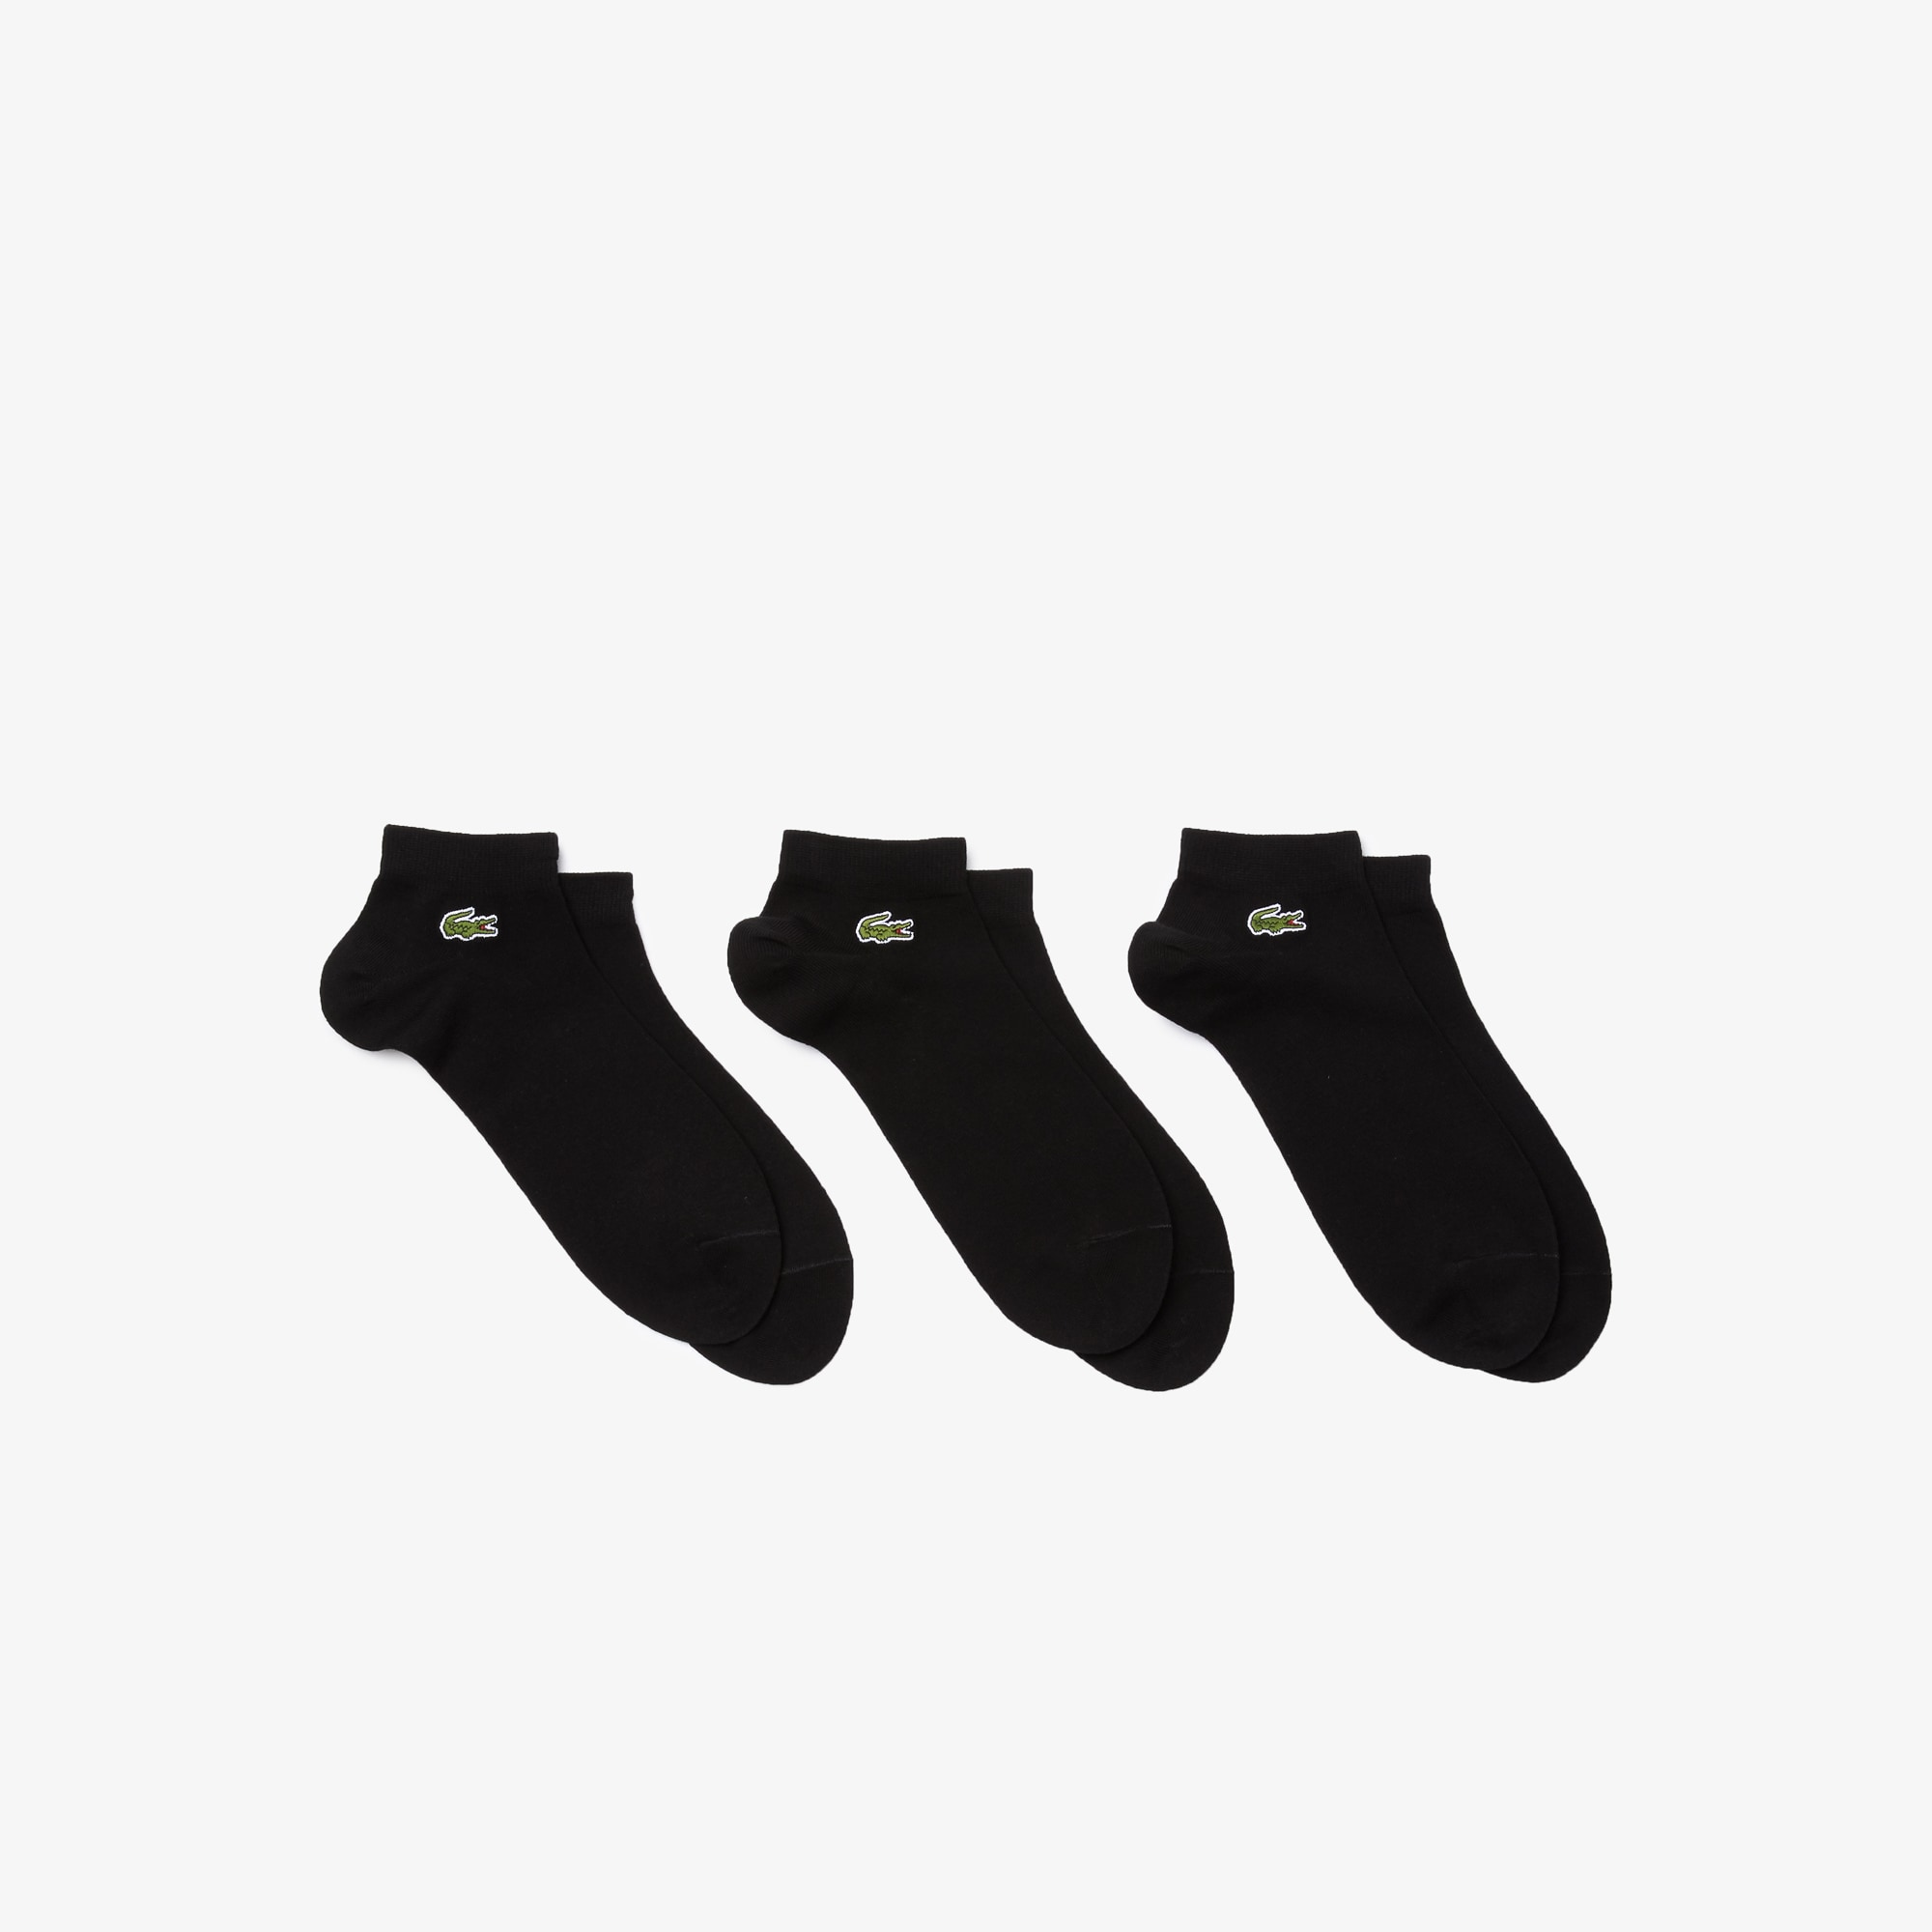 Pack Tres Pares Calcetines Bajos Lacoste Punto Liso